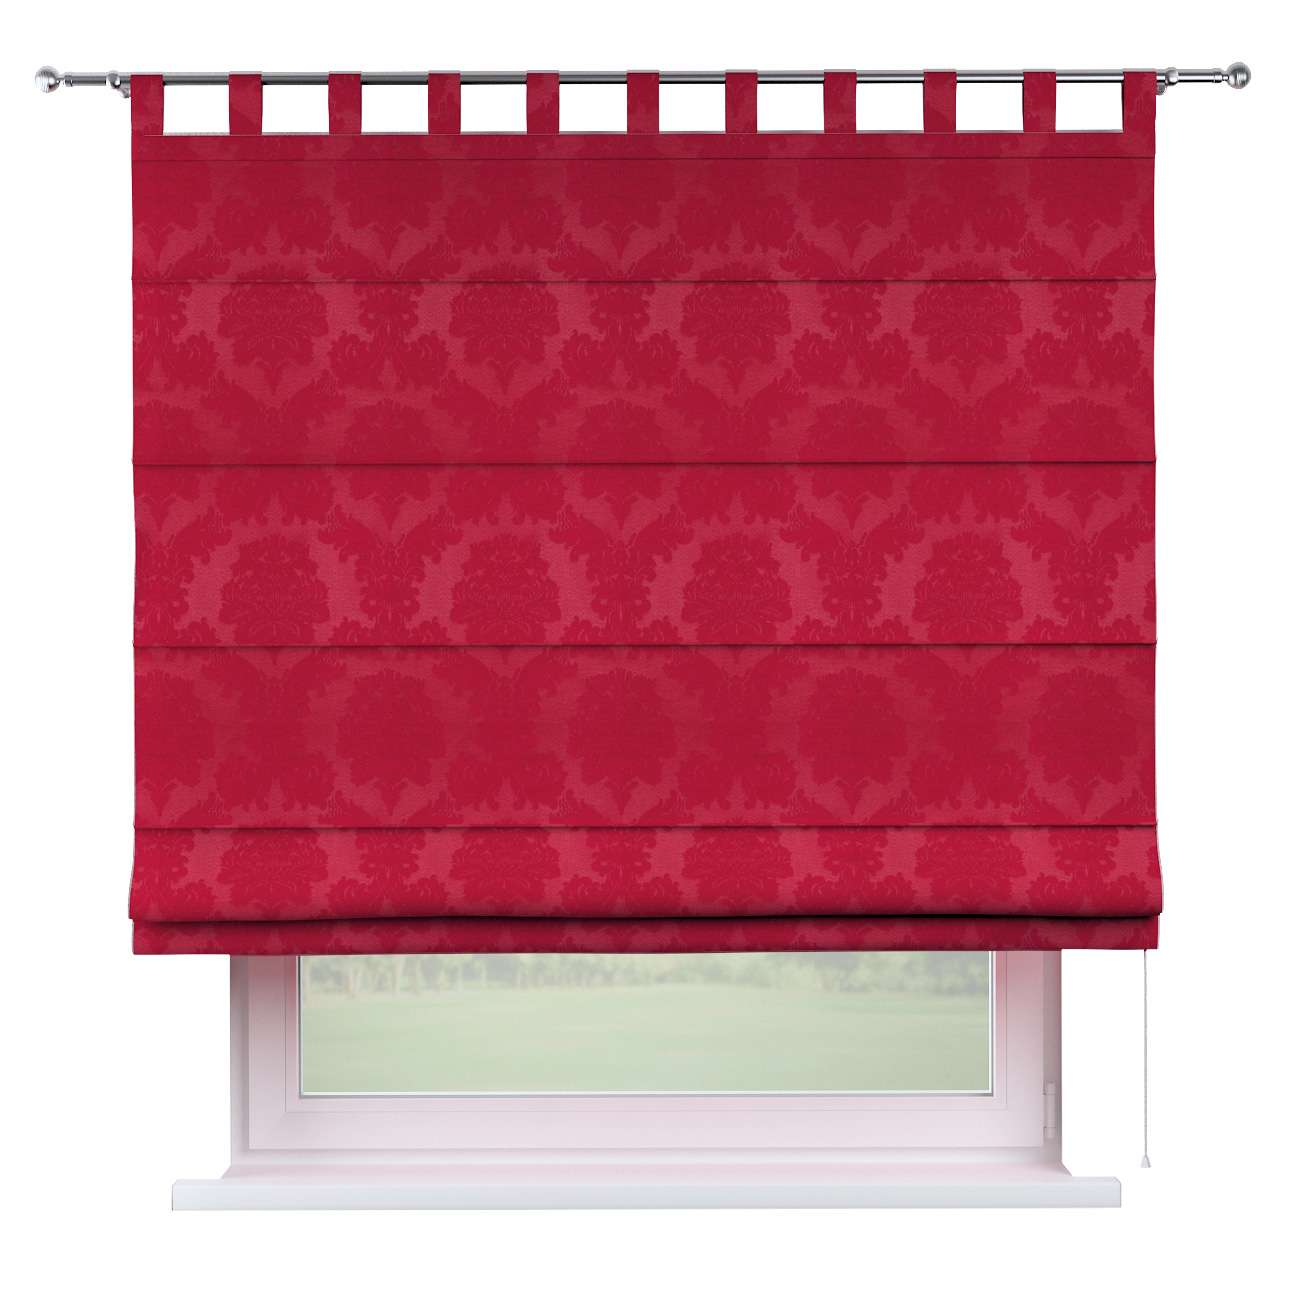 Verona tab top roman blind 80 x 170 cm (31.5 x 67 inch) in collection Damasco, fabric: 613-13